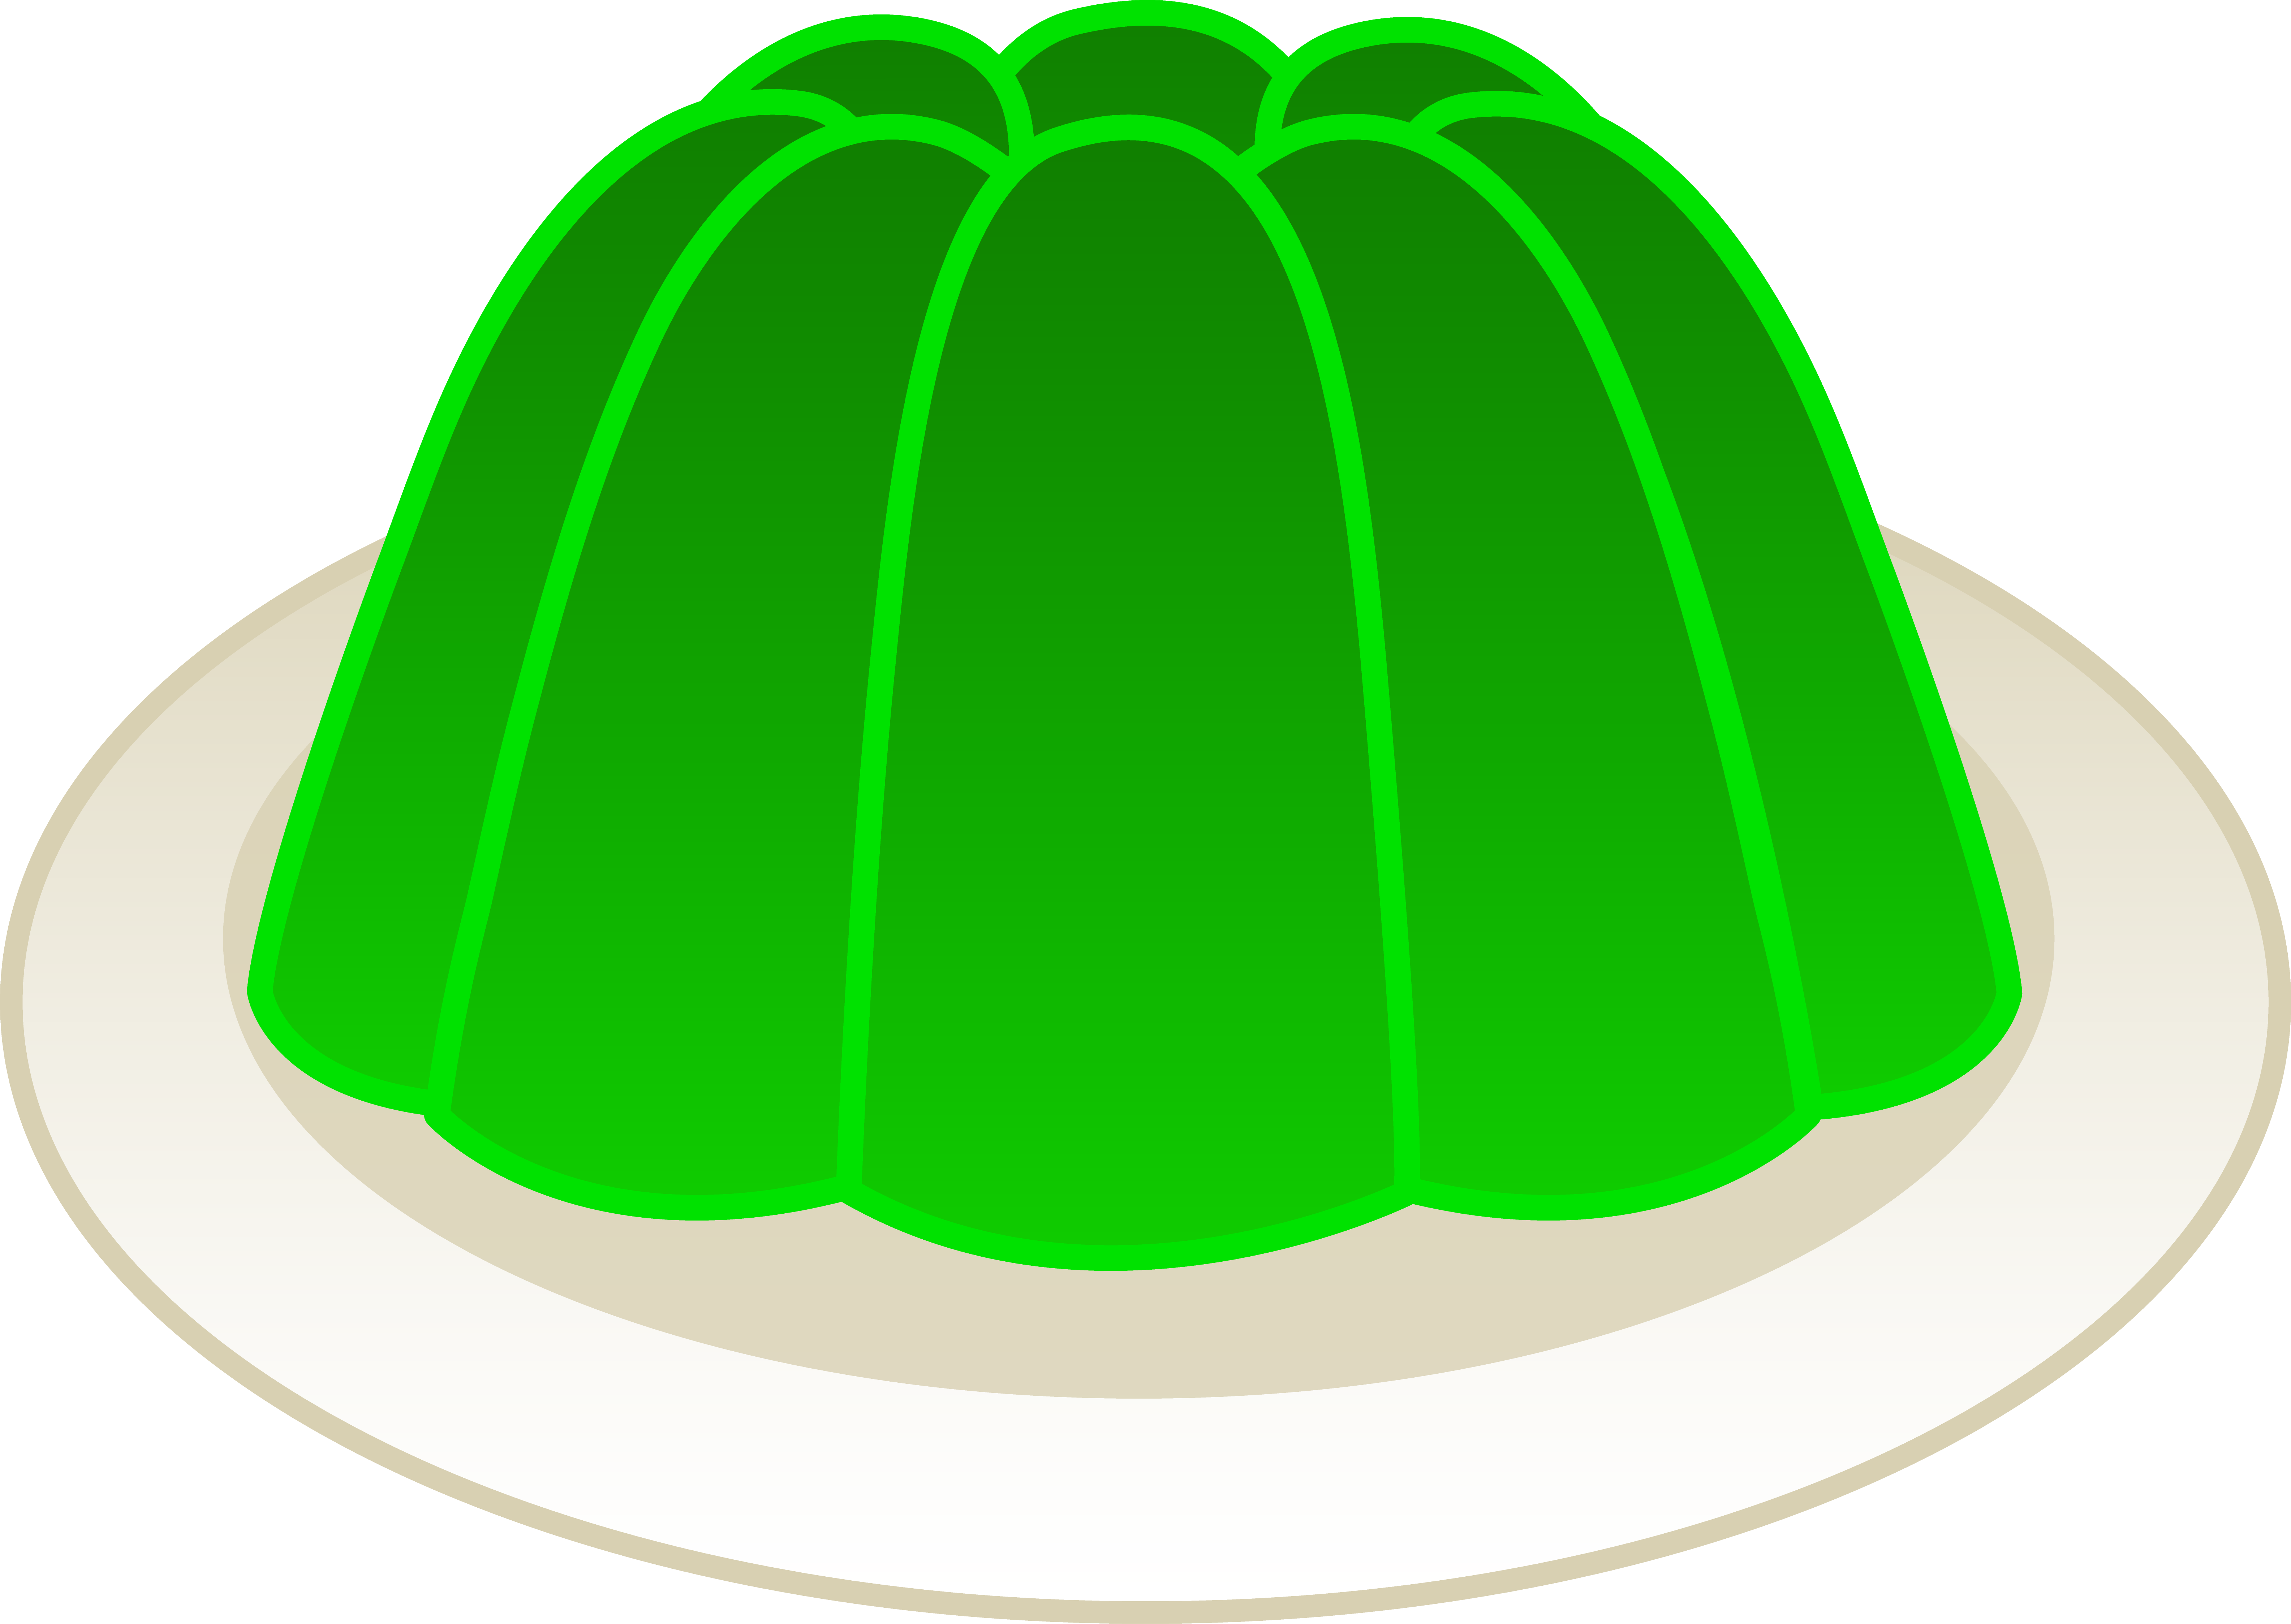 Gelatin clipart royalty free library Lime Green Gelatin Mold - Free Clip Art royalty free library